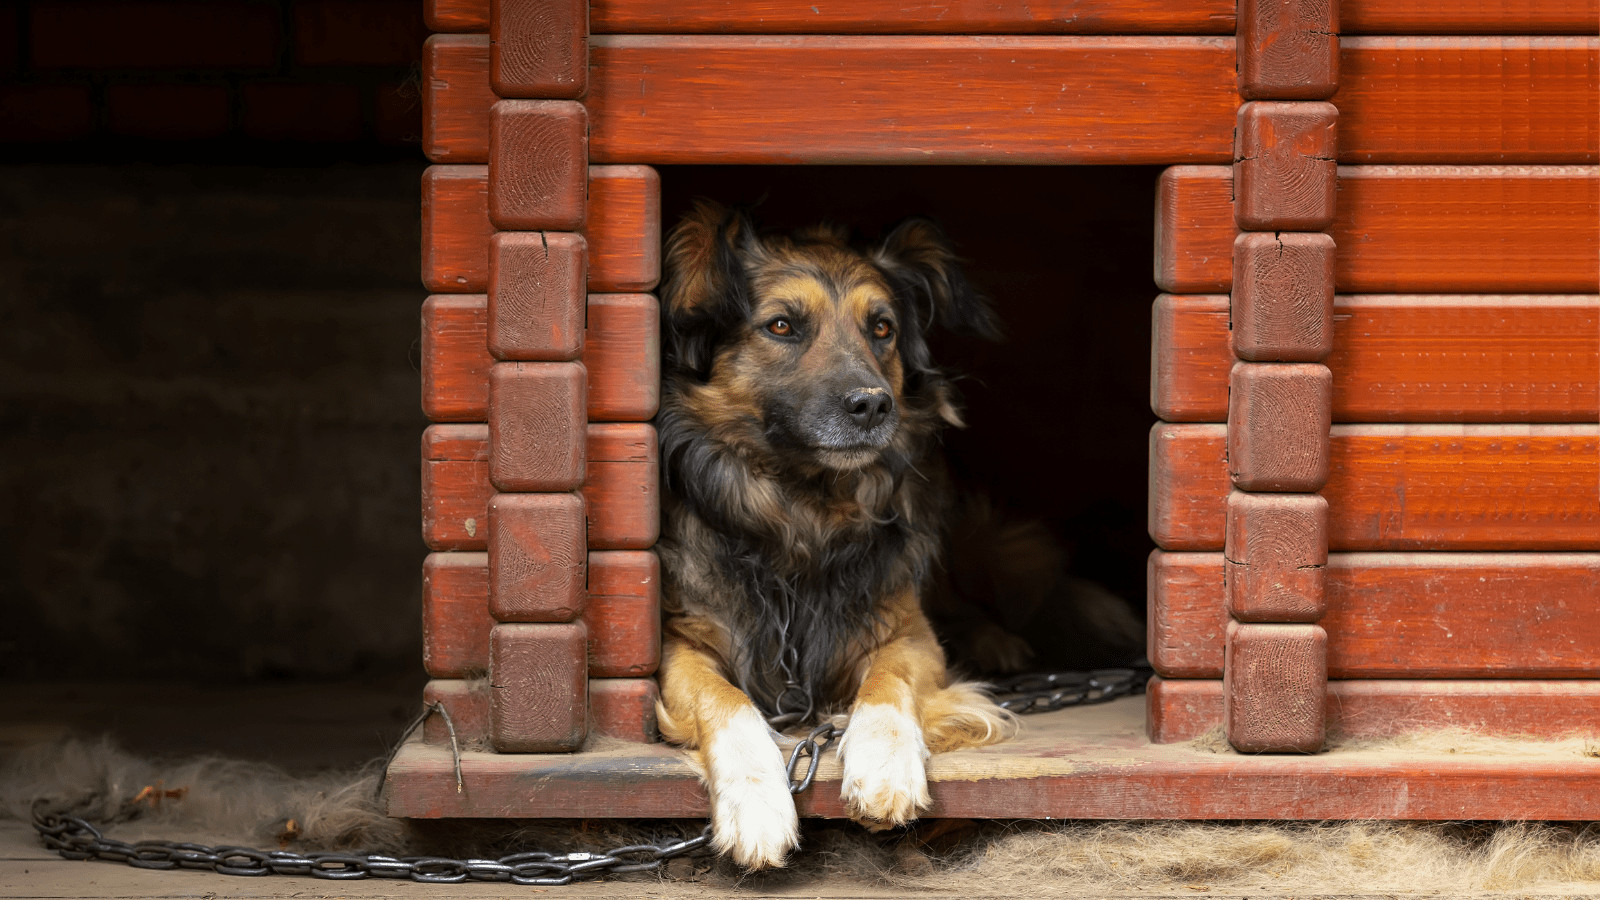 How to choose a dog kennel for an aggressive dog